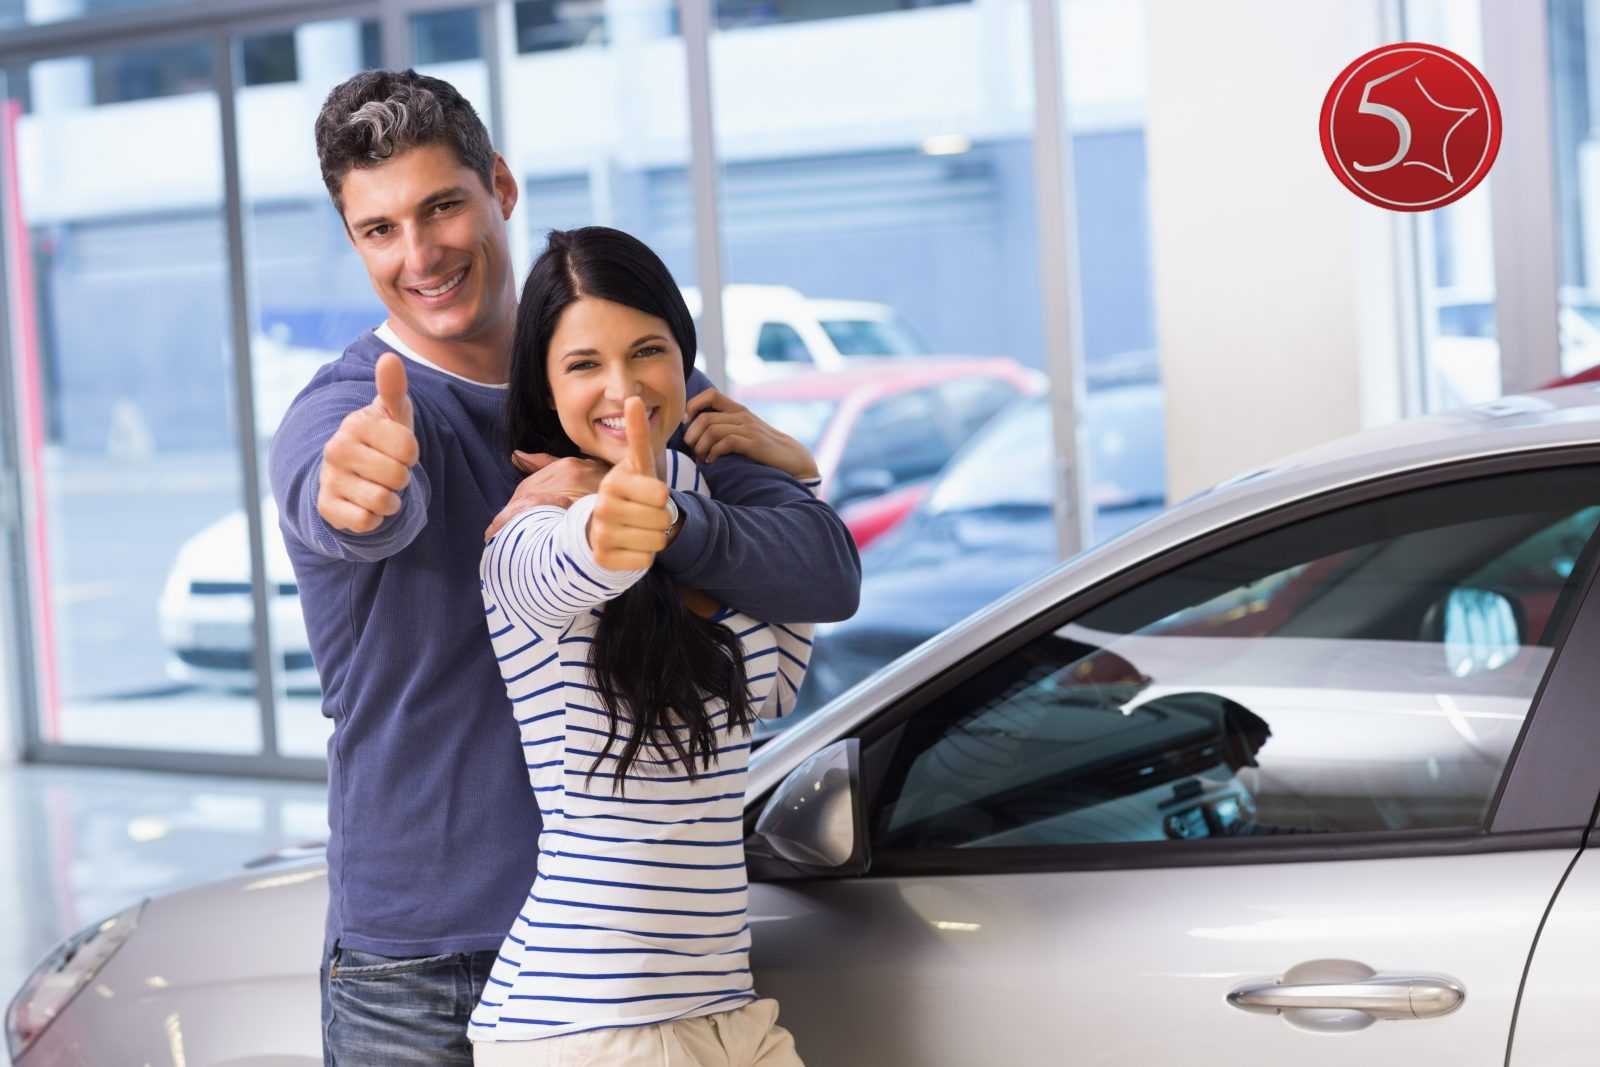 Where To Find Low Mileage Cars In St. Charles